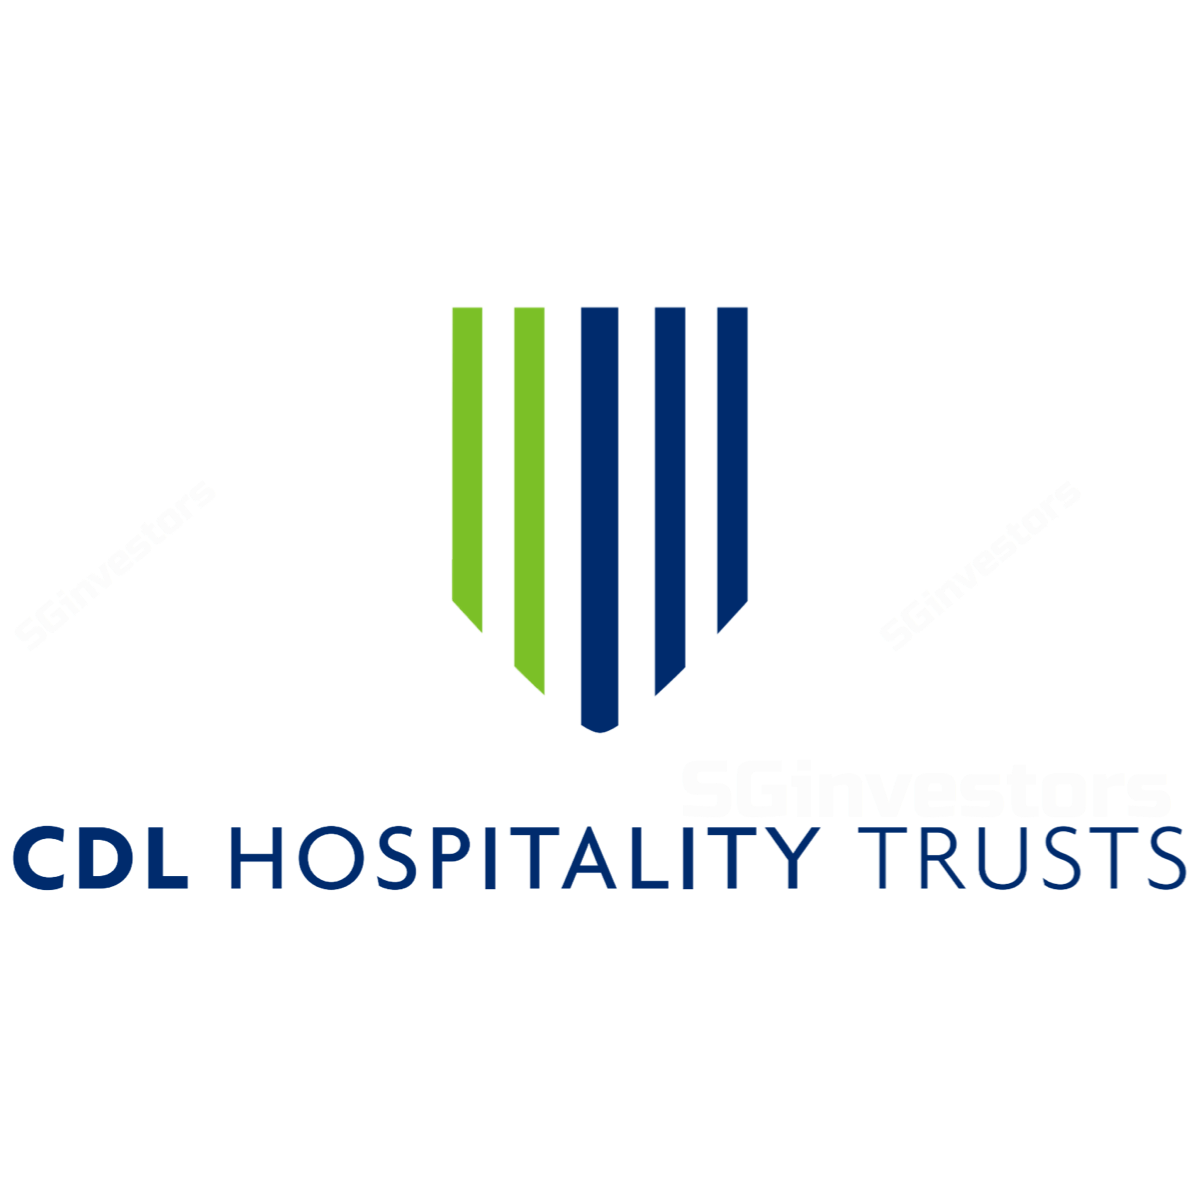 CDL Hospitality Trusts - RHB Invest 2017-12-19: A Good Proxy To Rebound In Visitor Demand